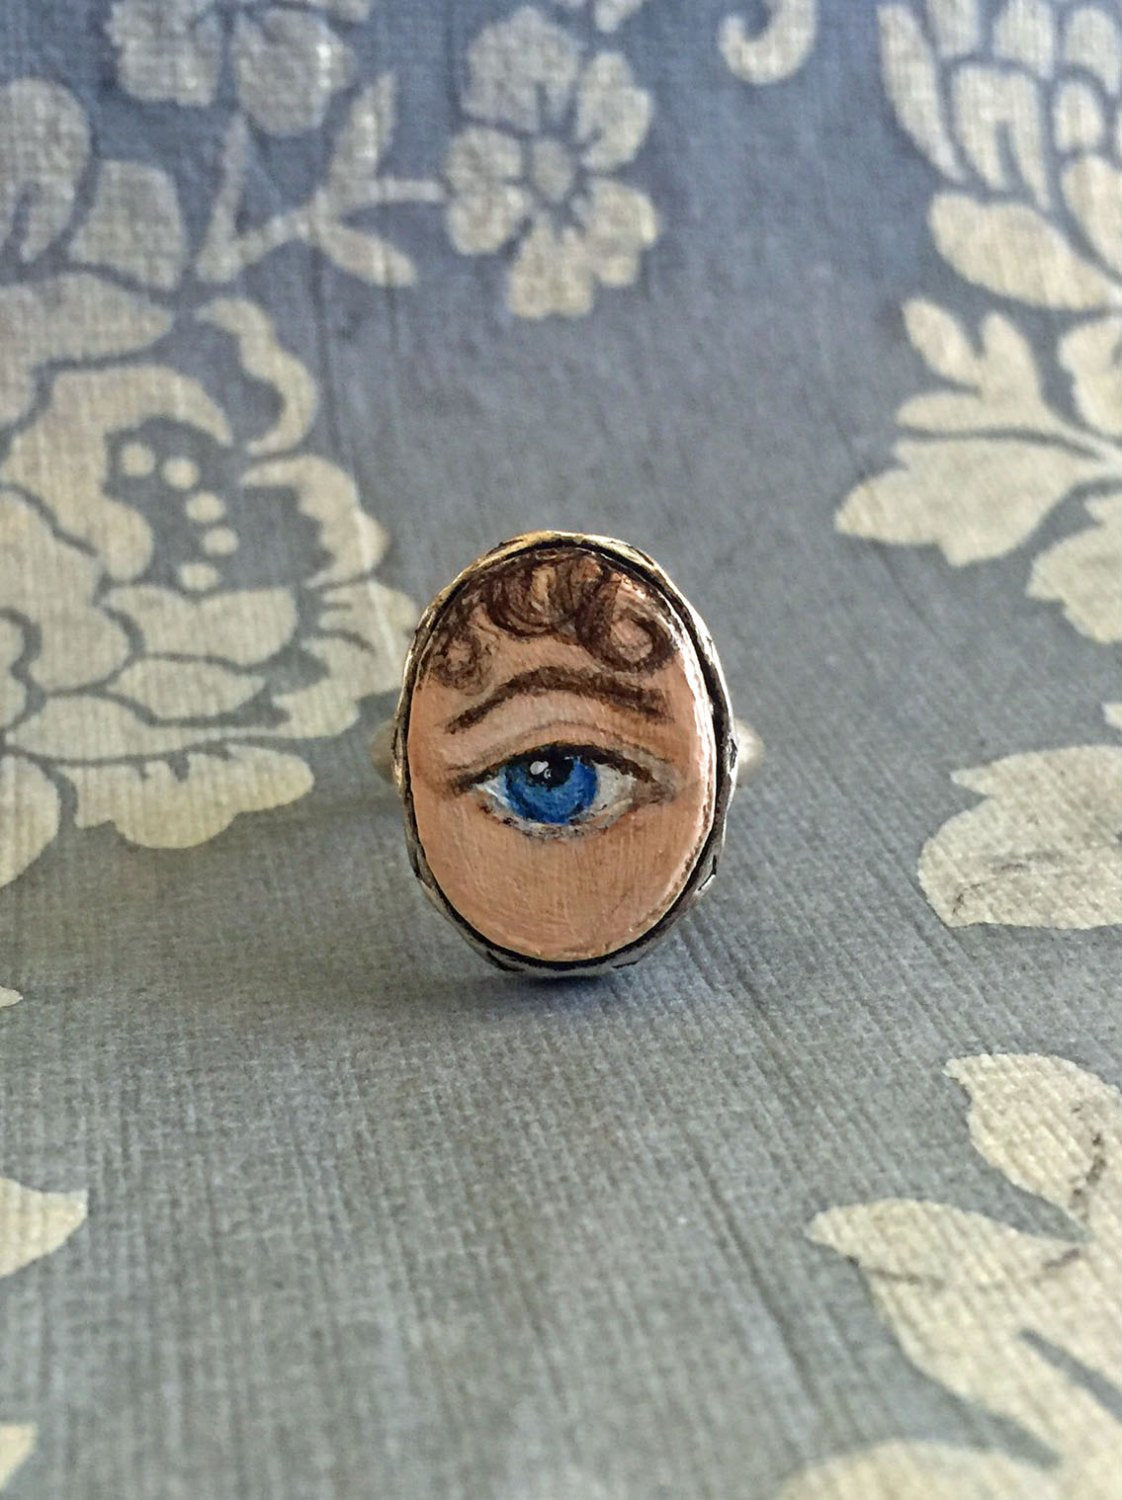 LOVER'S EYE Jewelry, Ring - original painting by Tina Tarnoff, vintage ring